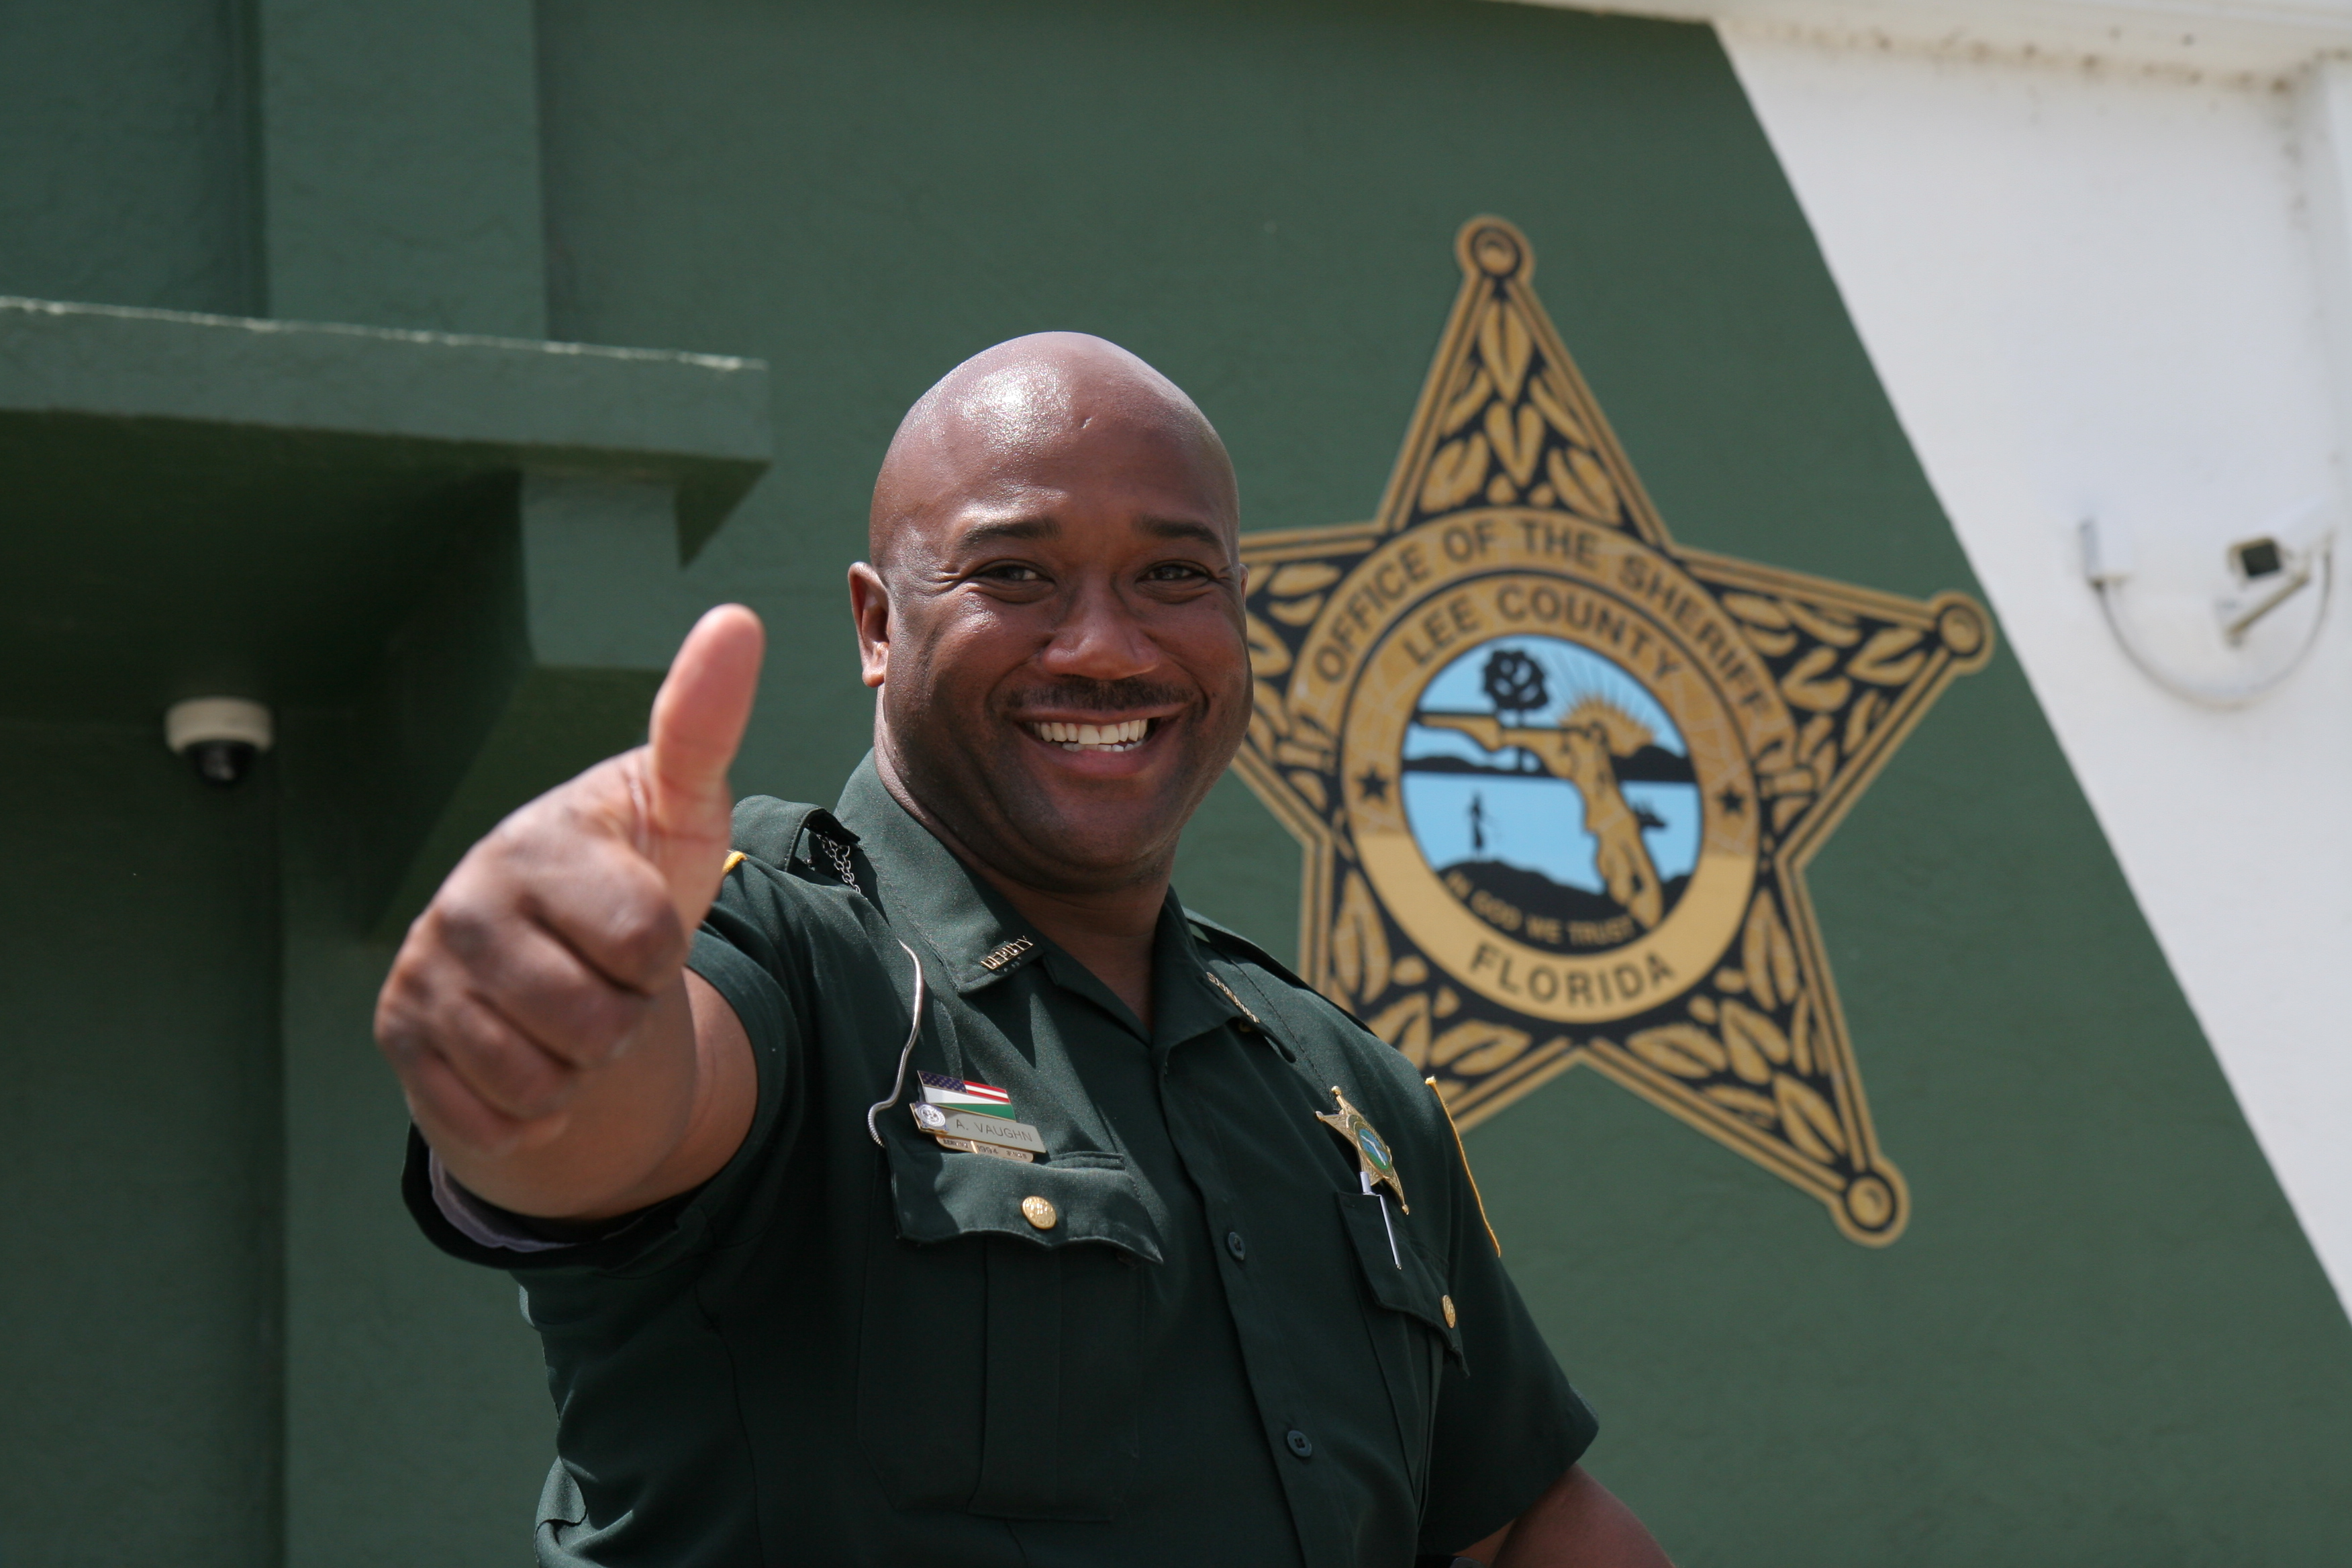 Florida Sheriff giving a thumbs up